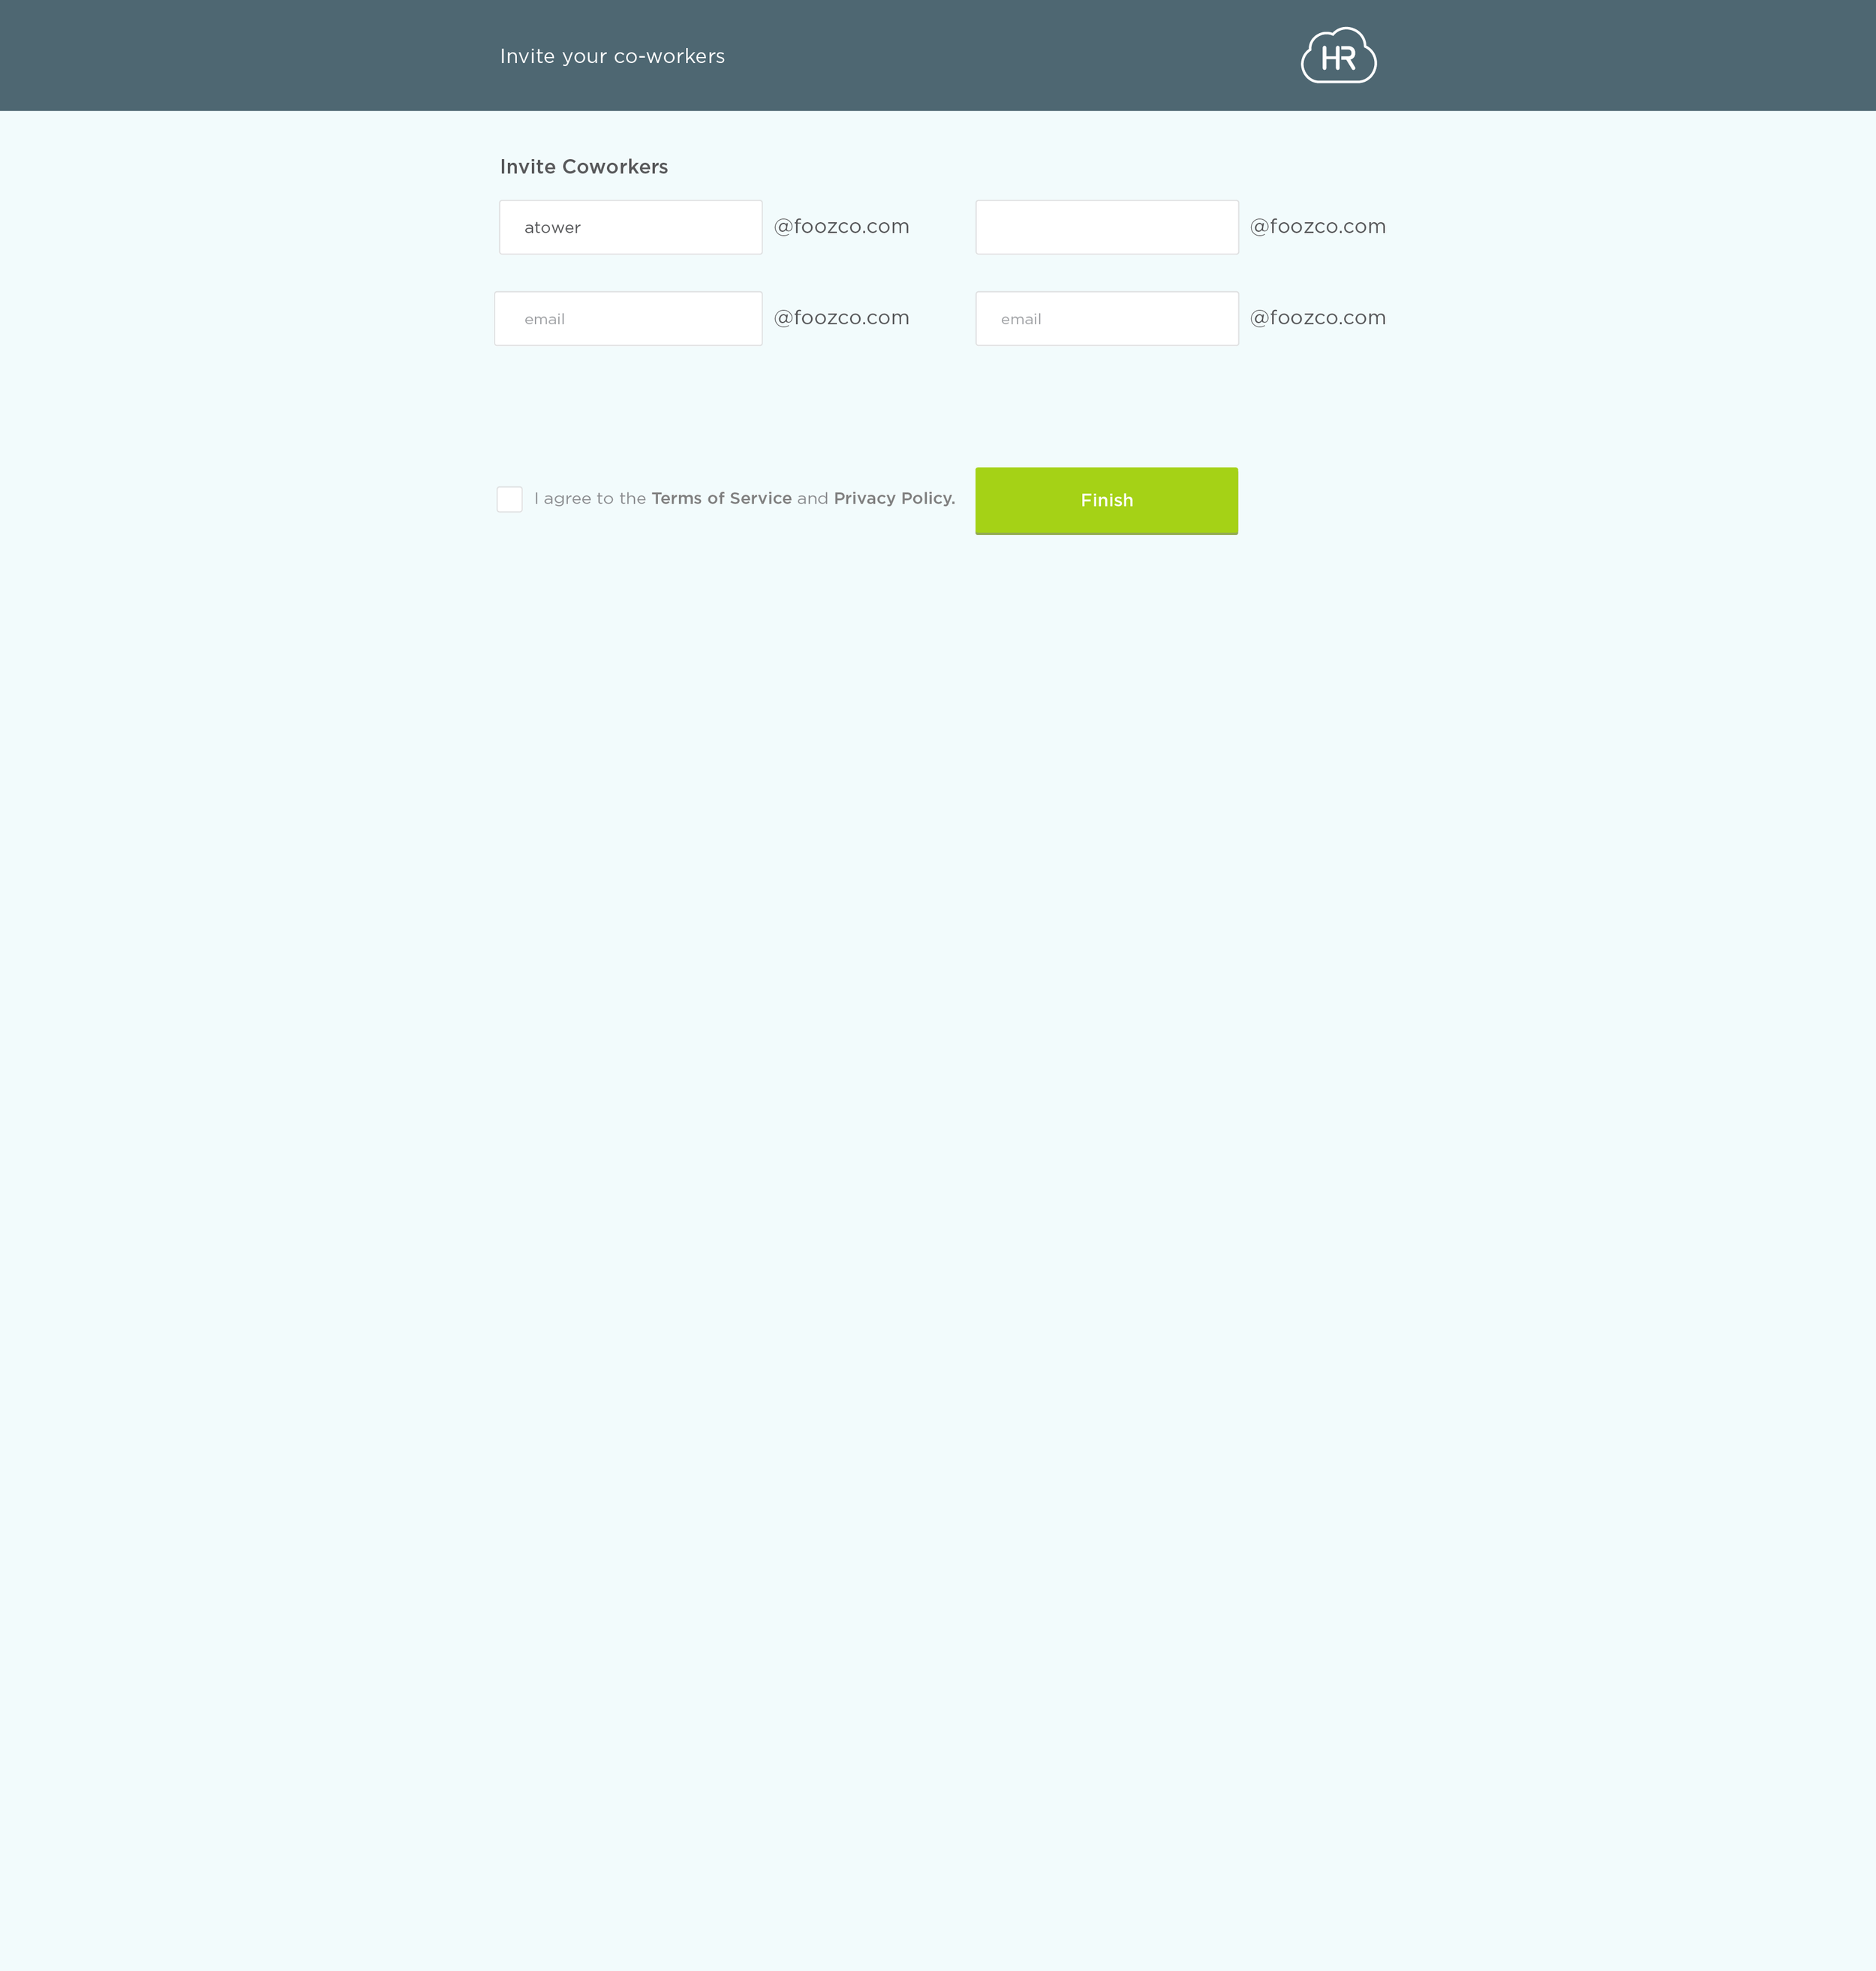 5-re_ux_wireframes_signup_11_JobDetail-NewApplicants(CardView) copy 6.png